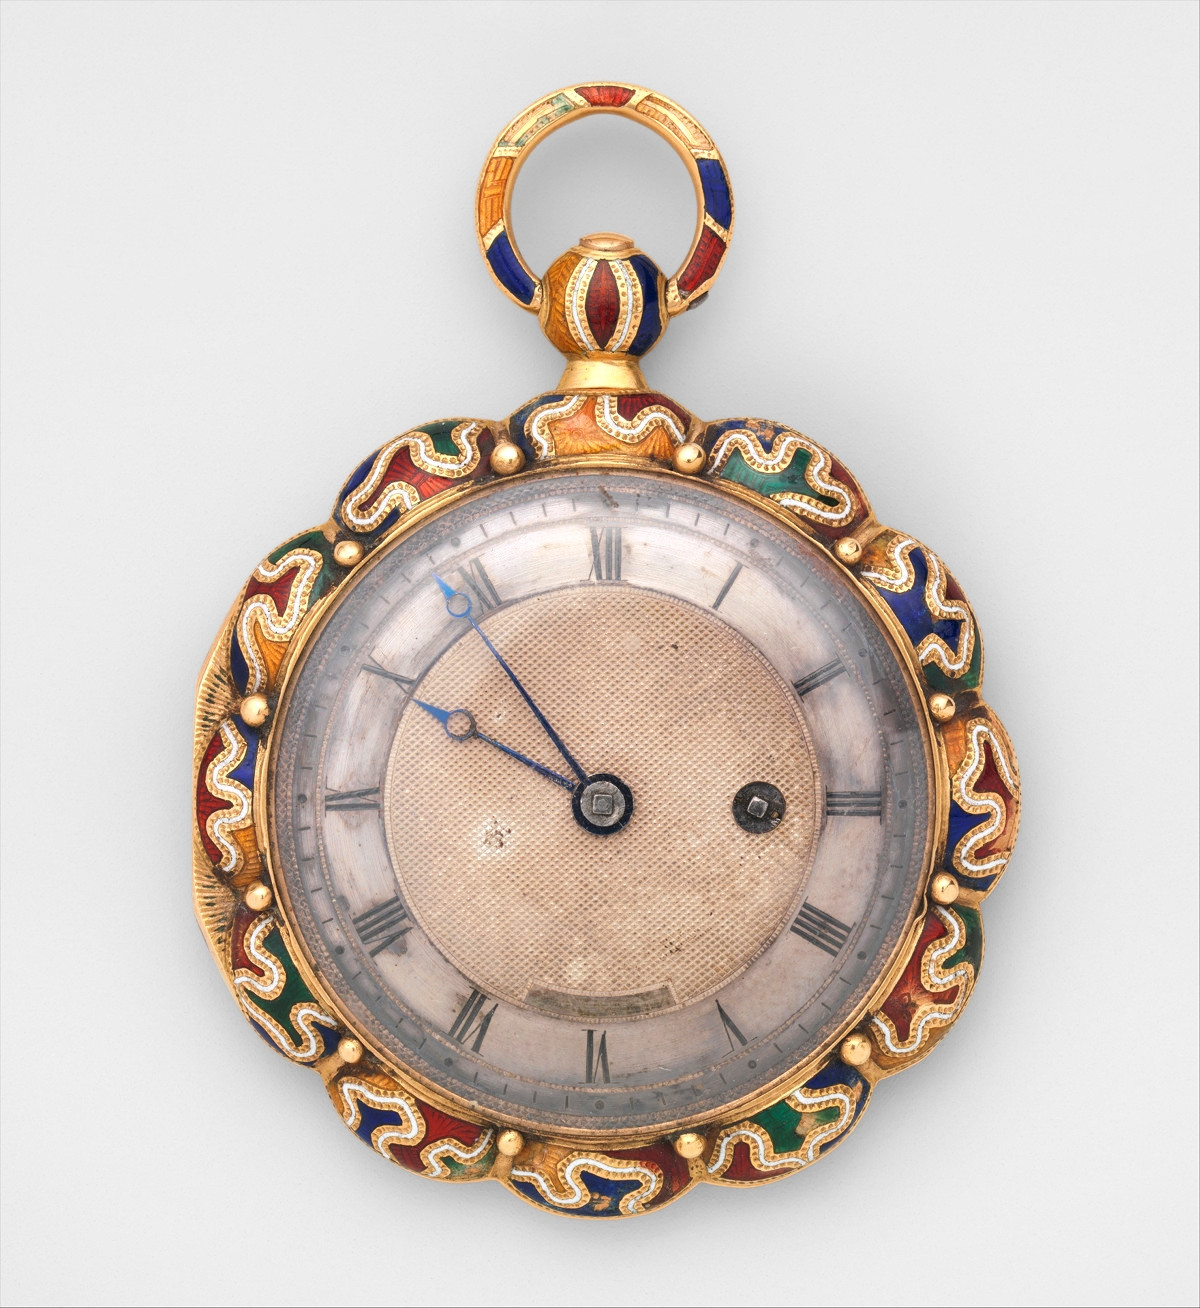 1825. Watch. Swiss, Geneva. Case of gold and enamel; jeweled movement, with cylinder escapement. metmuseum